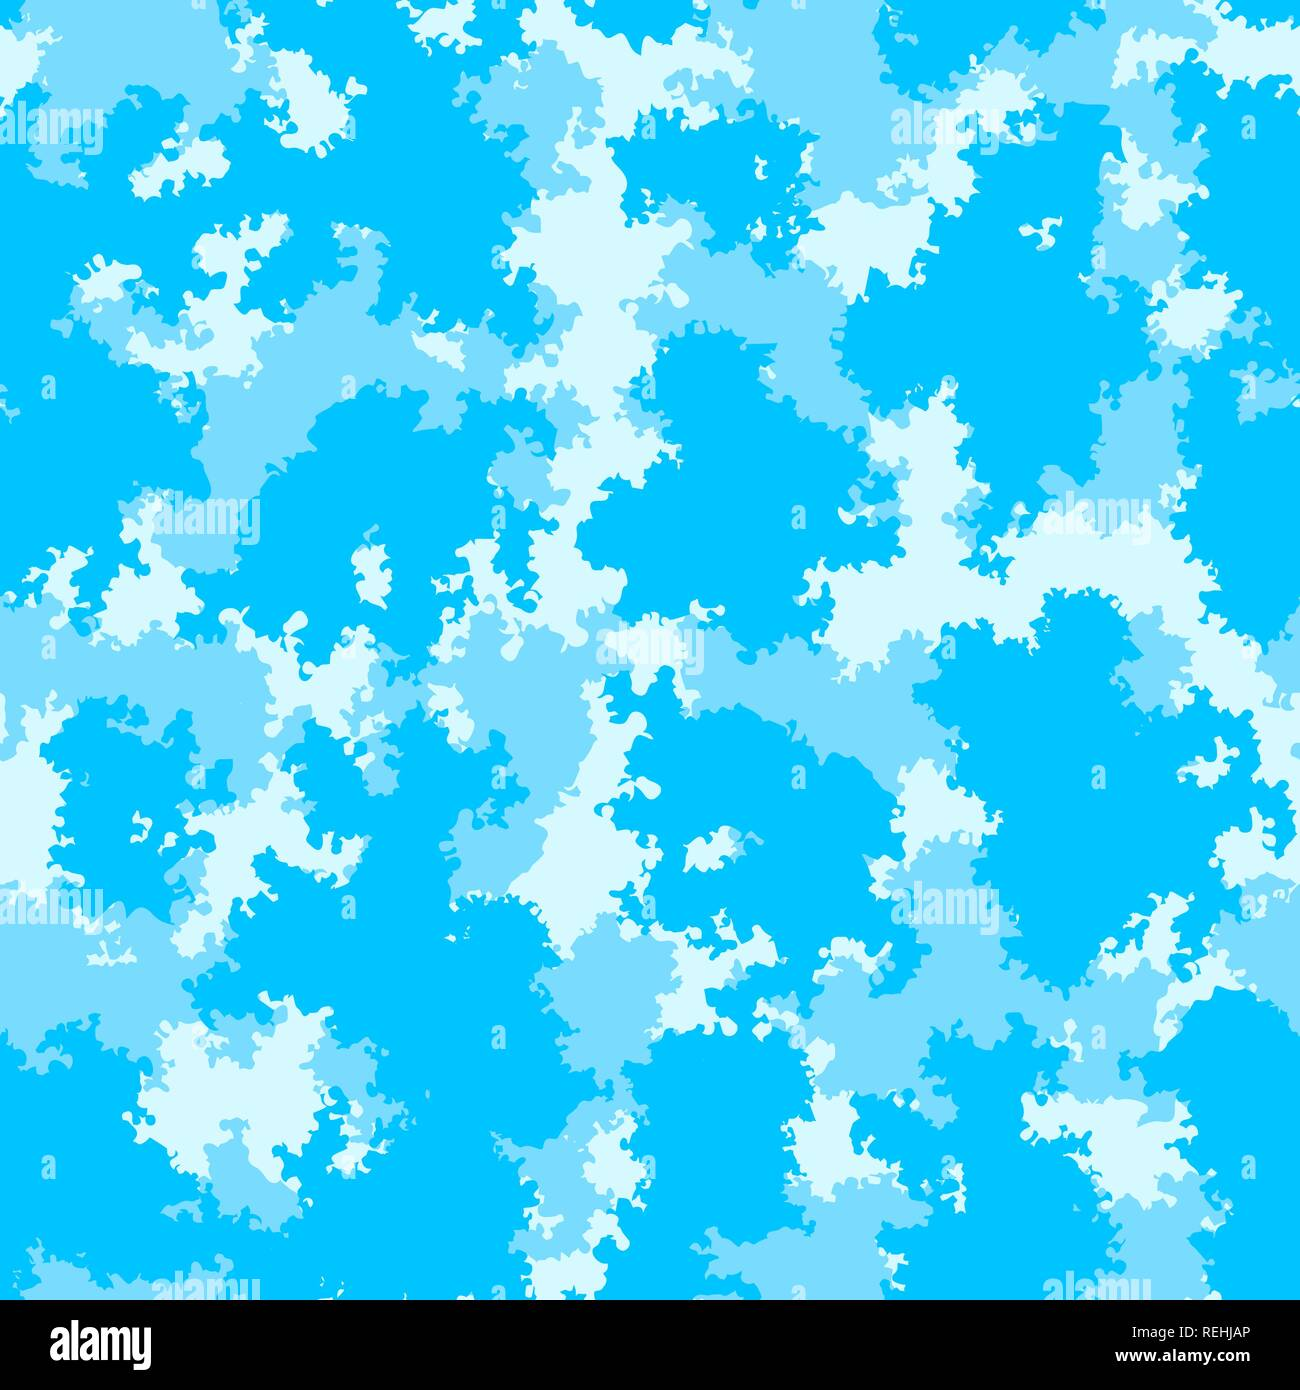 Cute baby room fashion camo colorful clouds nursery seamless wallpaper pattern - Stock Vector